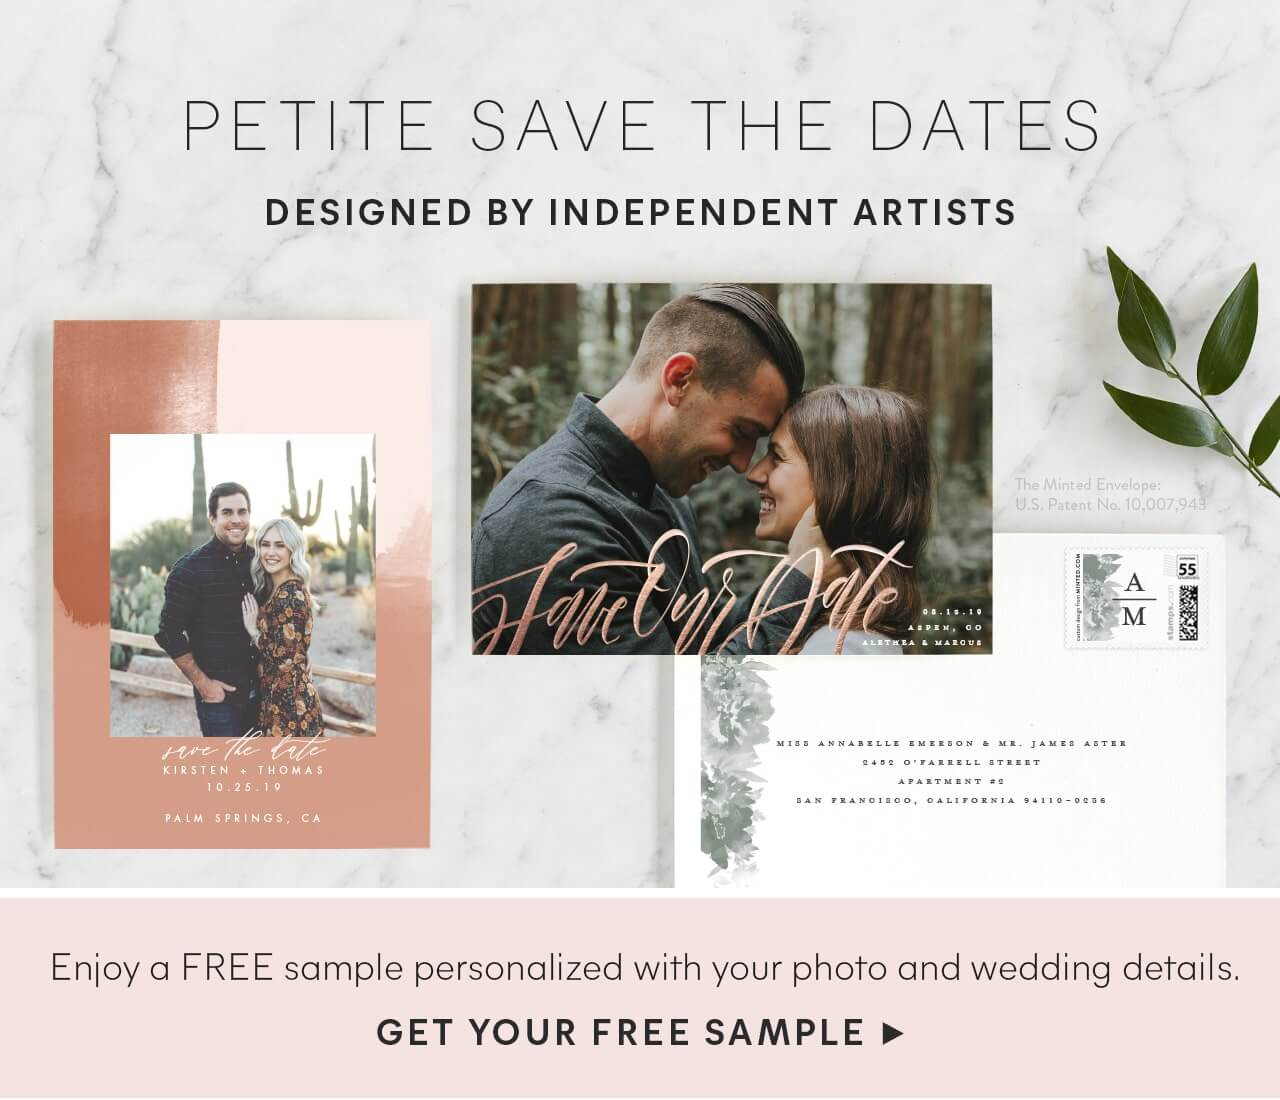 Petite Save the Dates